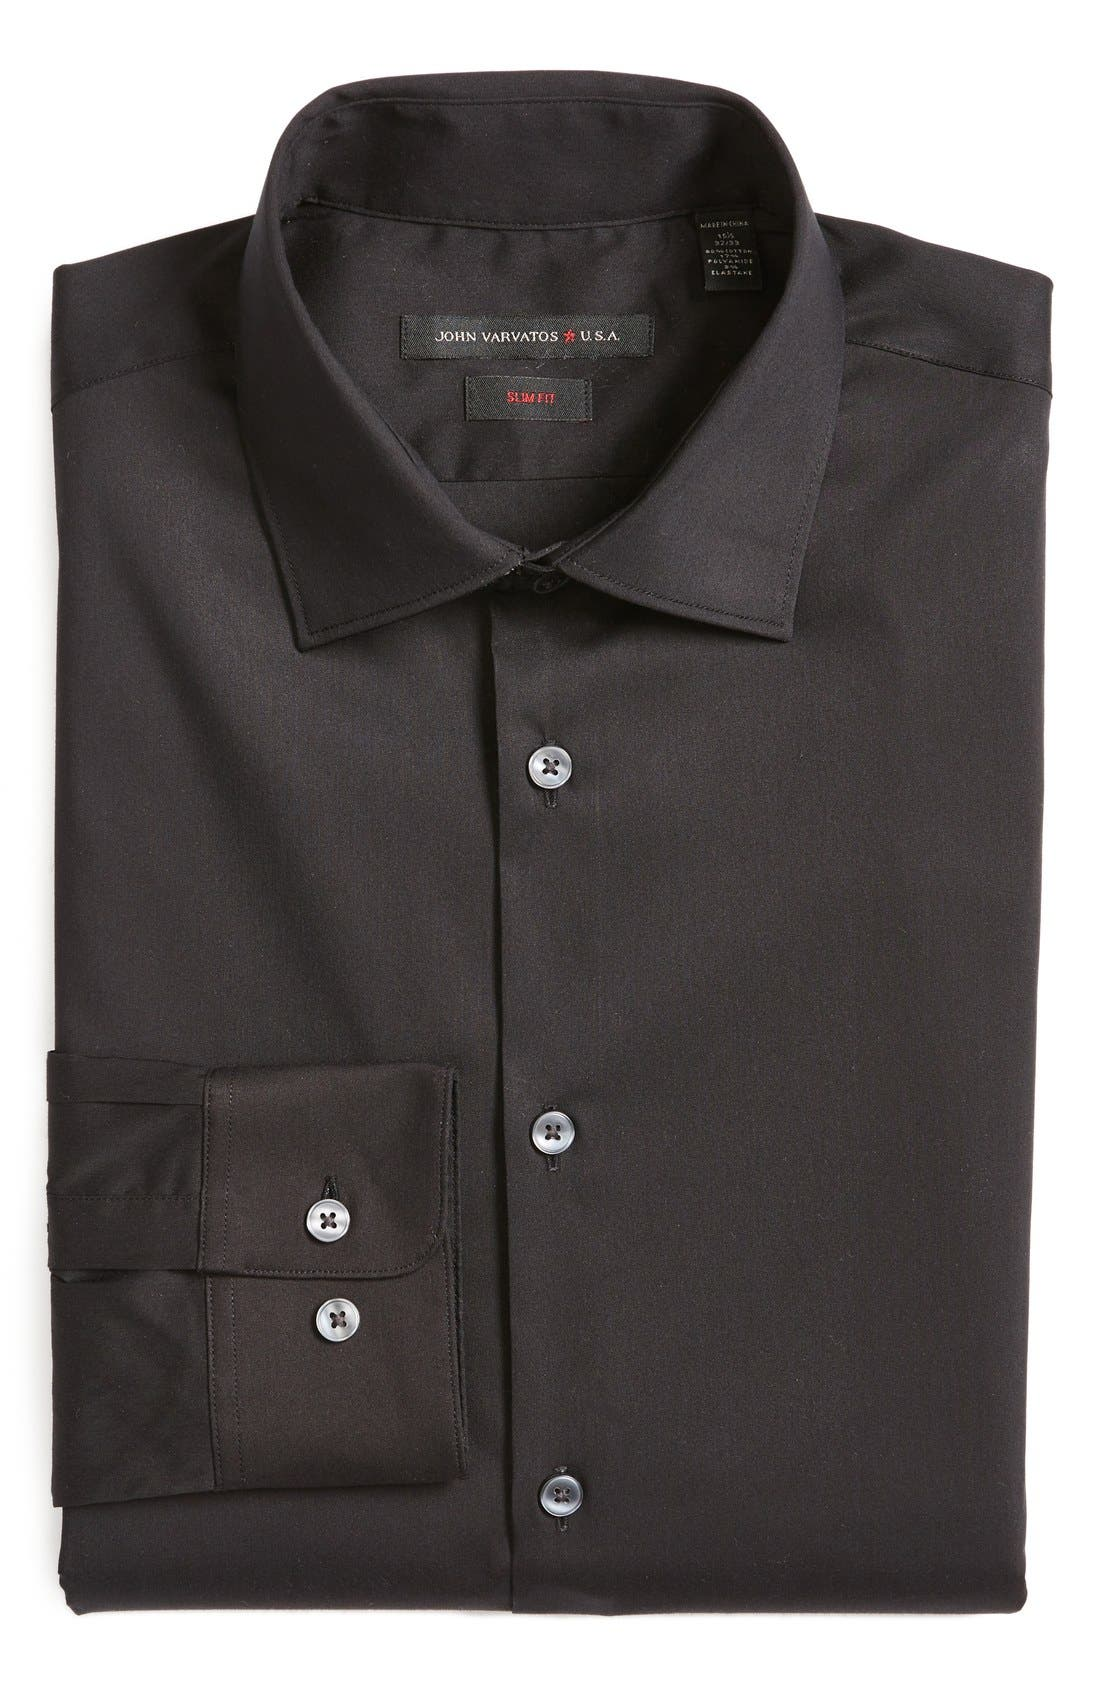 John Varvatos Star USA Slim Fit Solid Stretch Cotton Dress Shirt